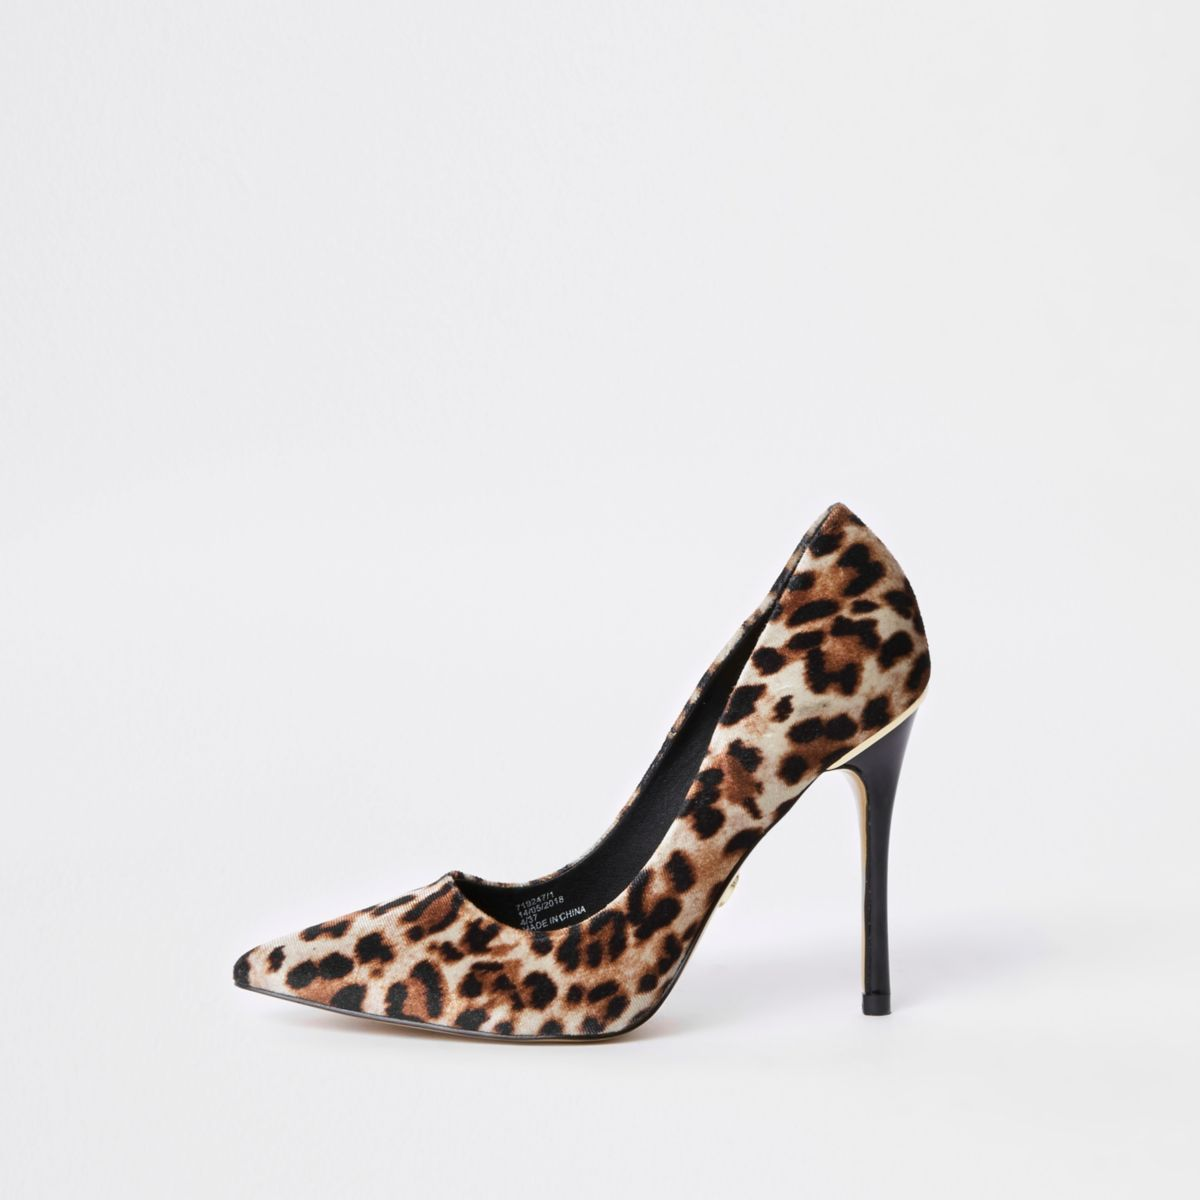 Brown leopard print pumps